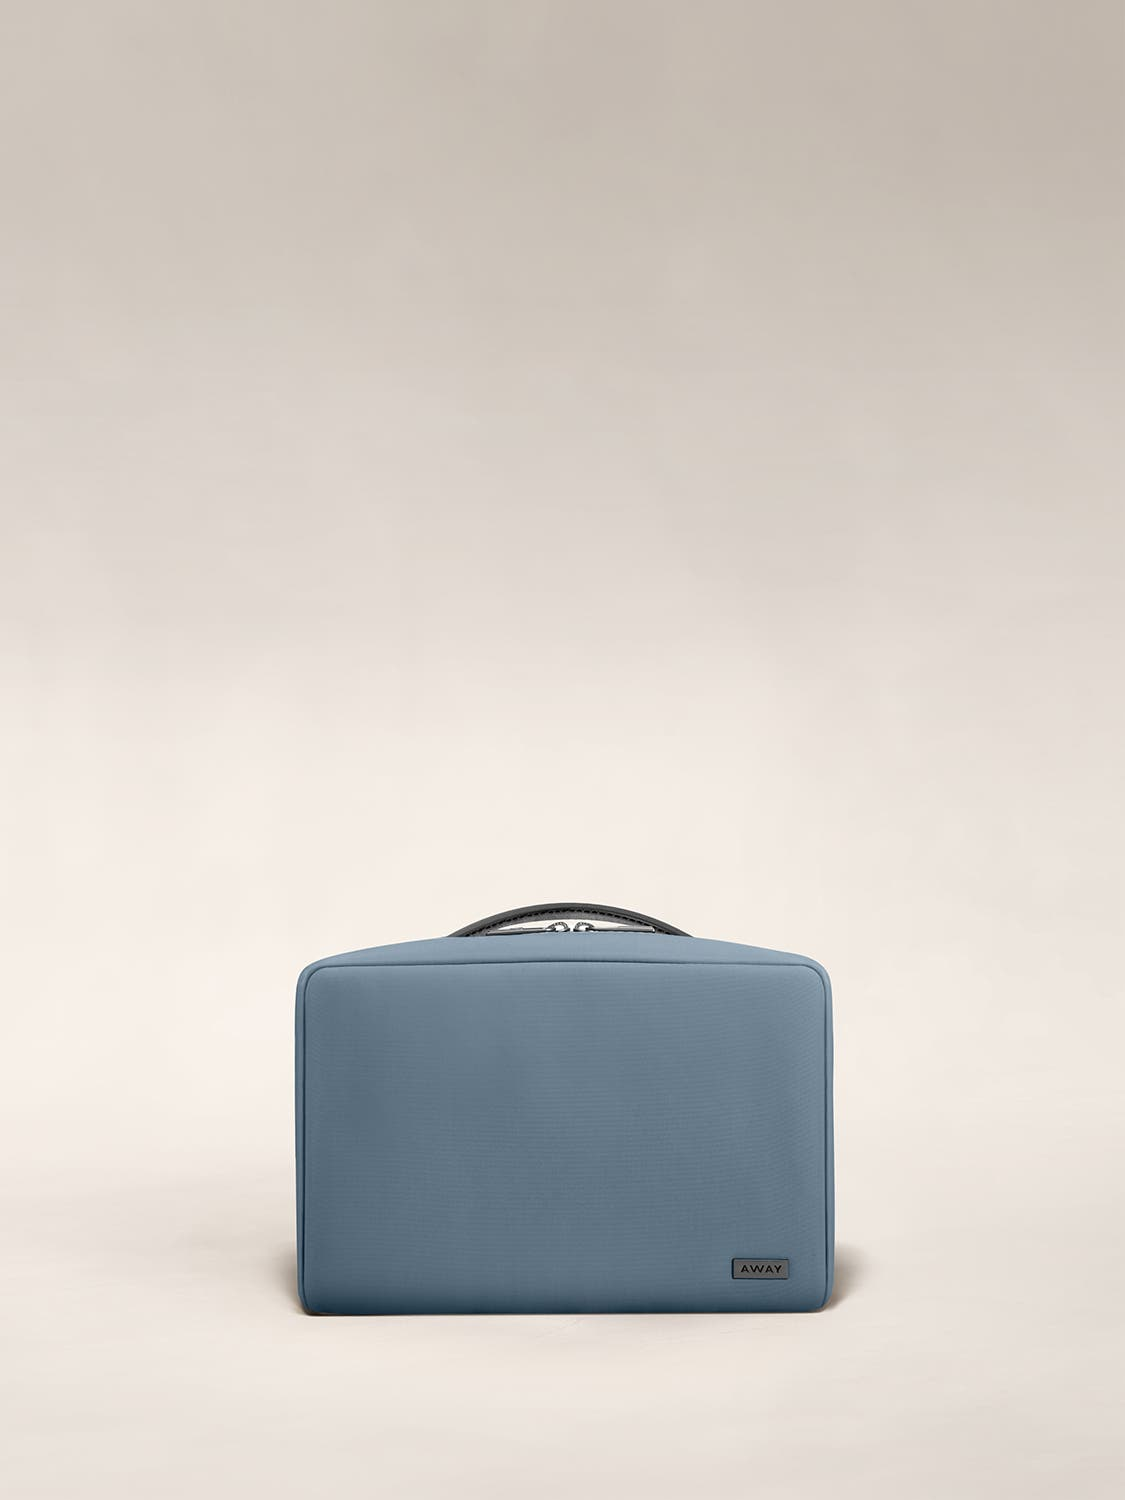 Small travel toiletry bag in the color coast by Away.